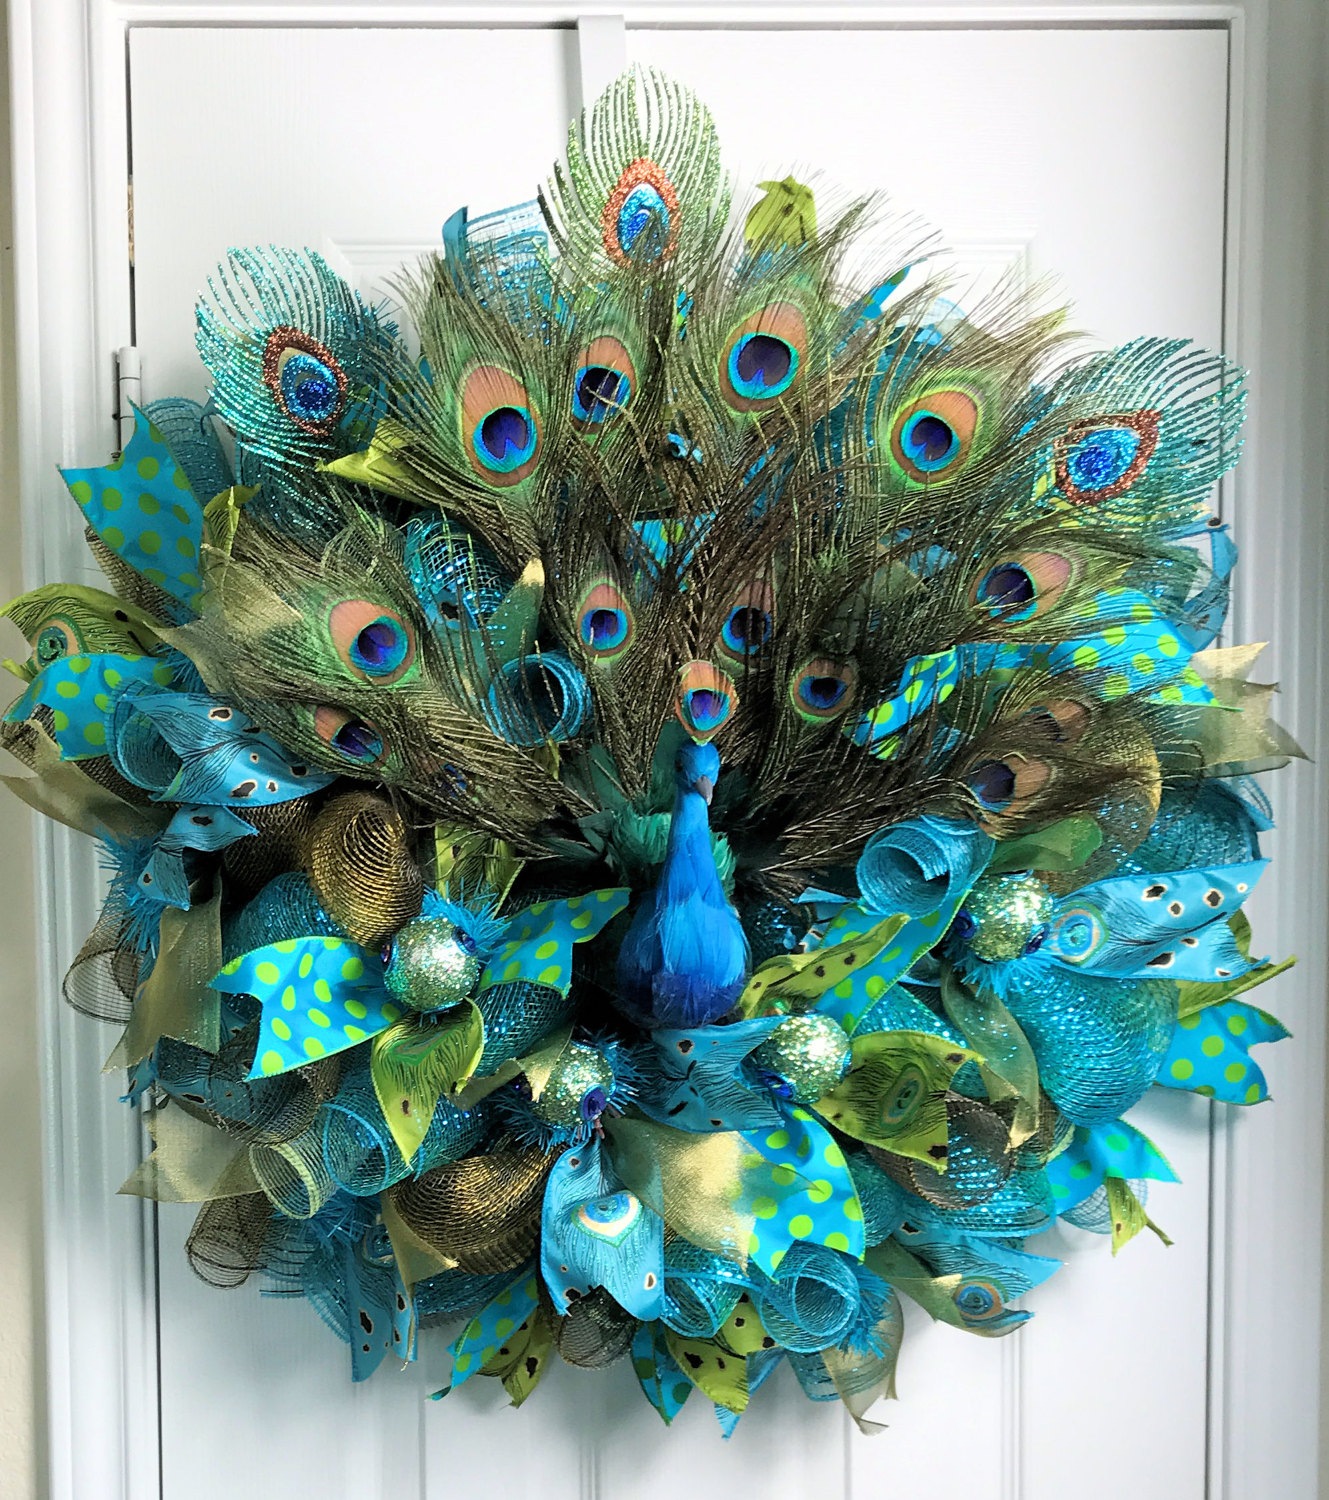 Luxury on The Peacock Decorations, Peacock Home Decor Ideas